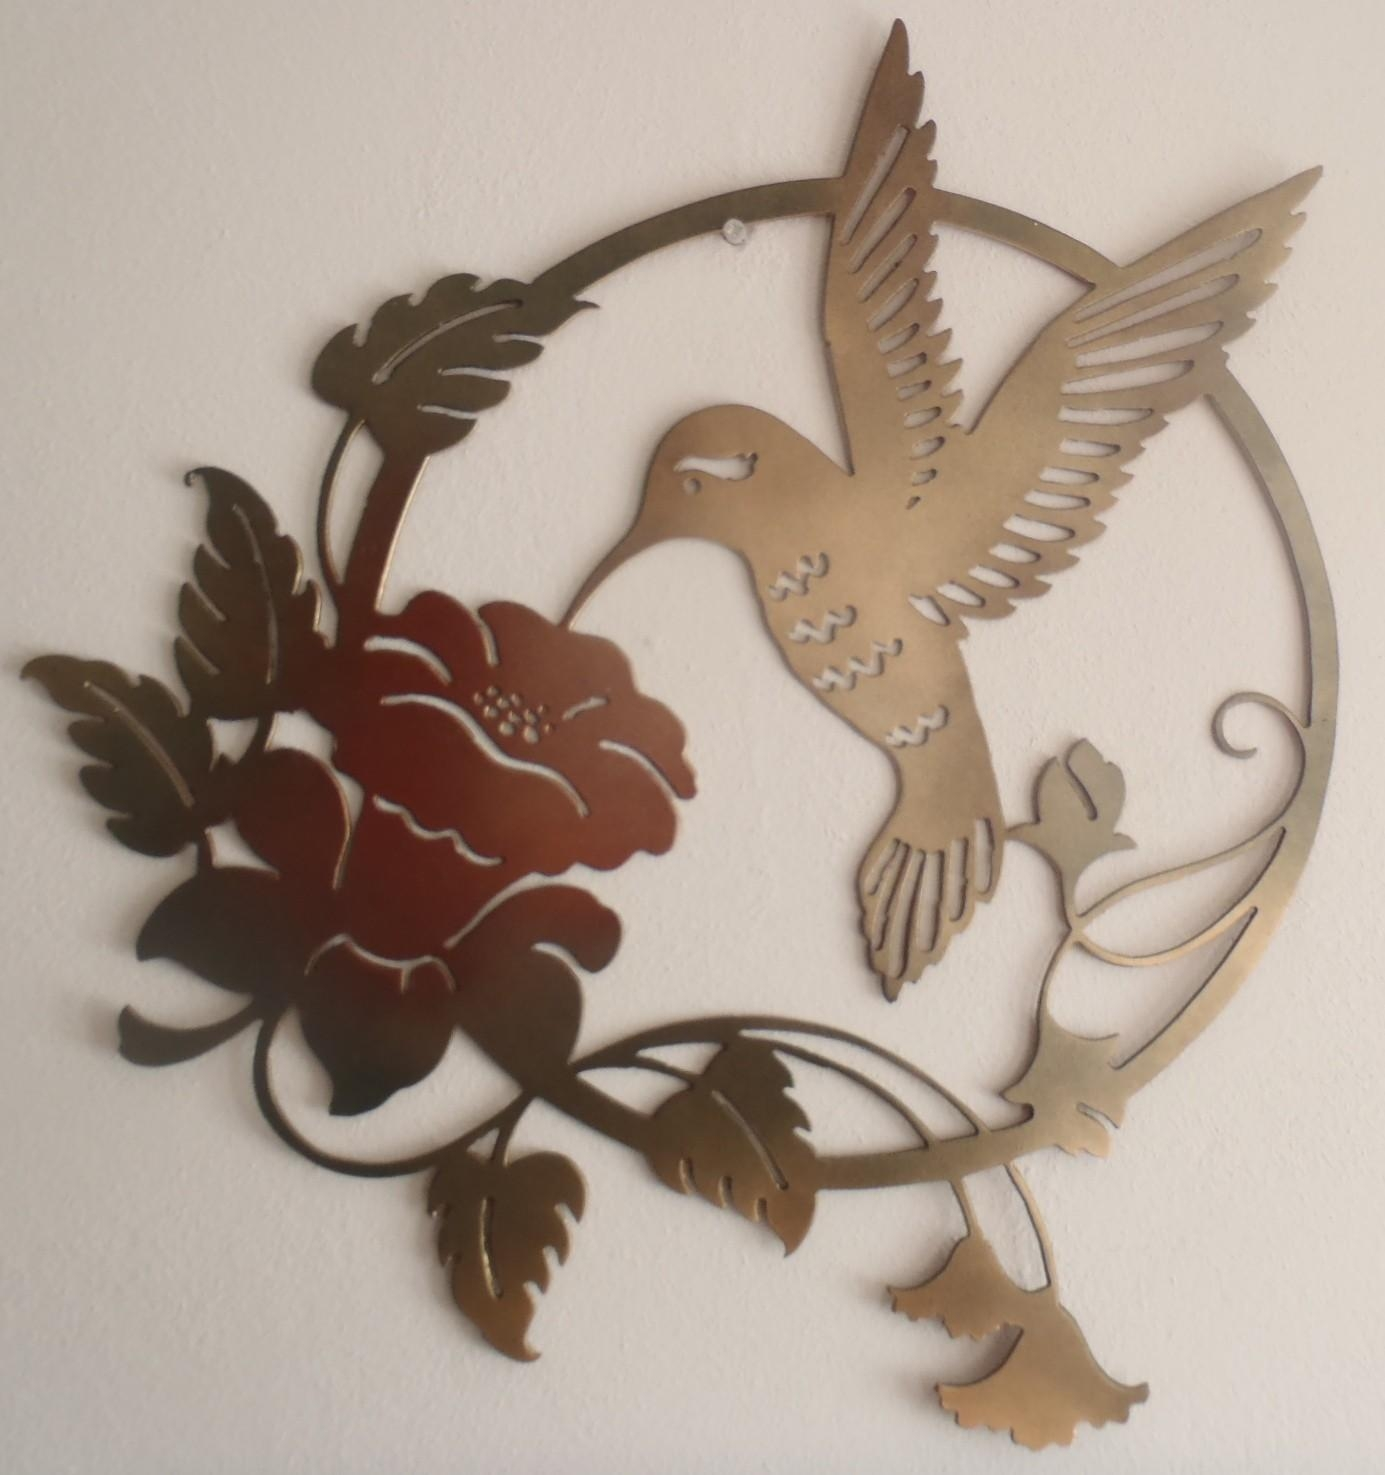 Metal Art Decor For Home (Image 13 of 20)